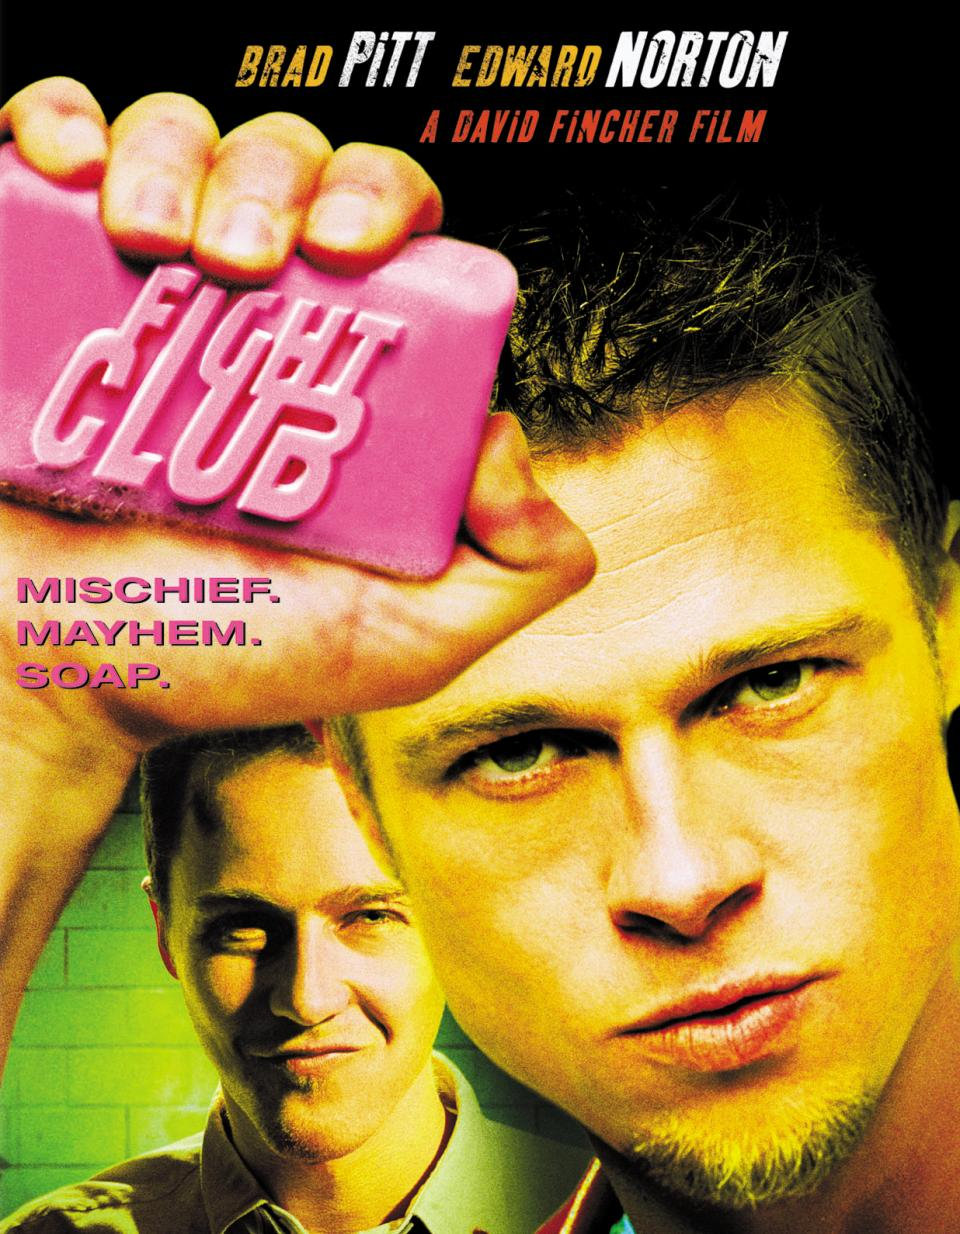 Fight-Club-Wallpaper-13.jpg